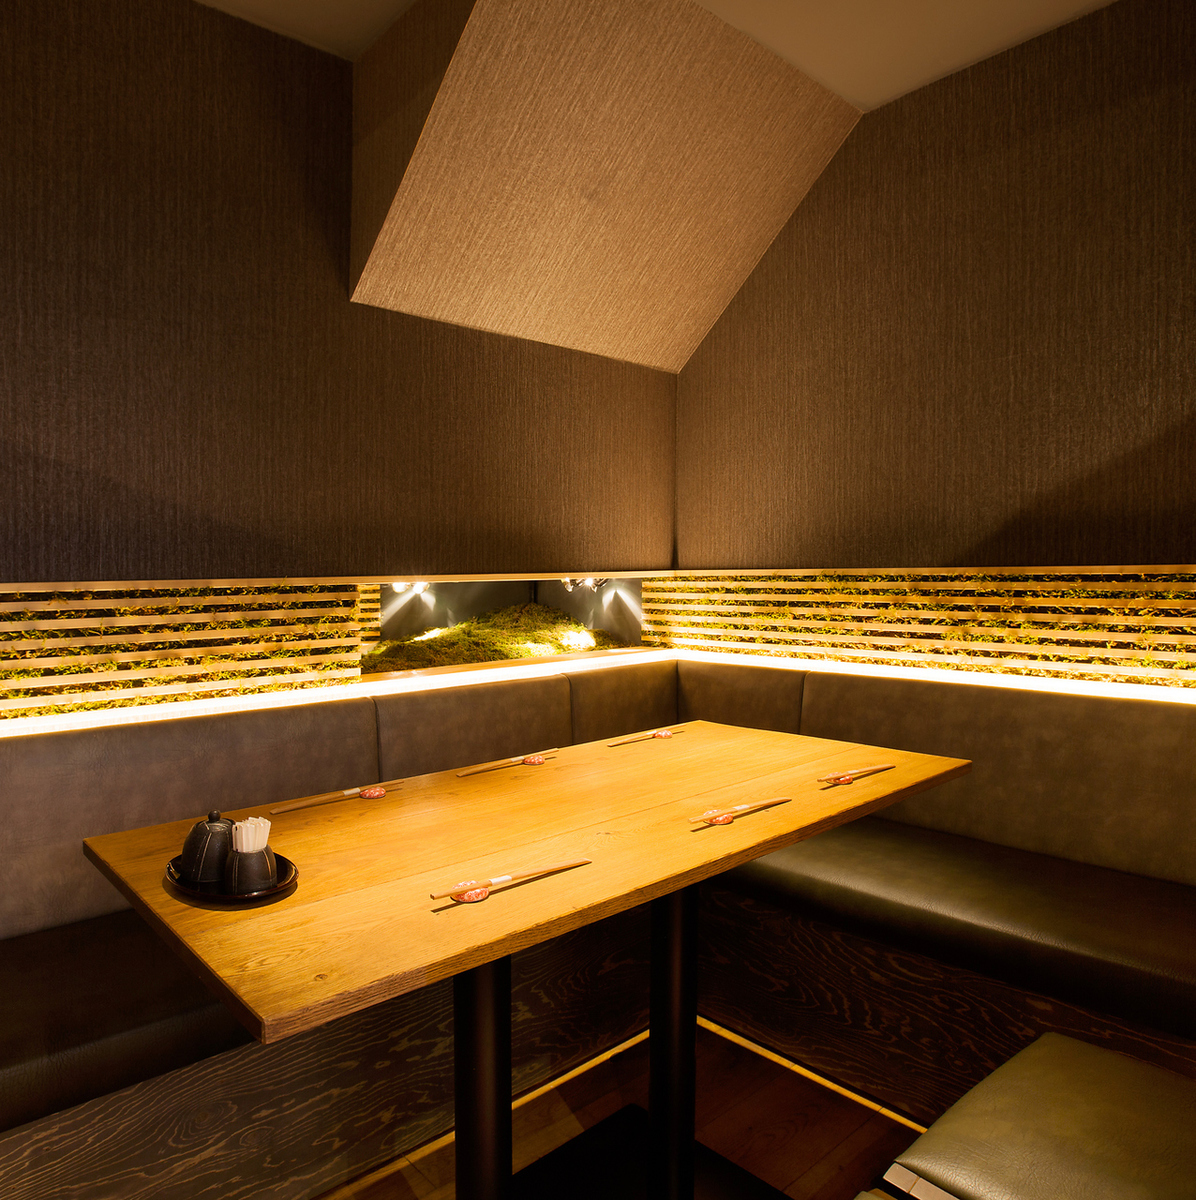 Up to 6 people · Relaxing private room space